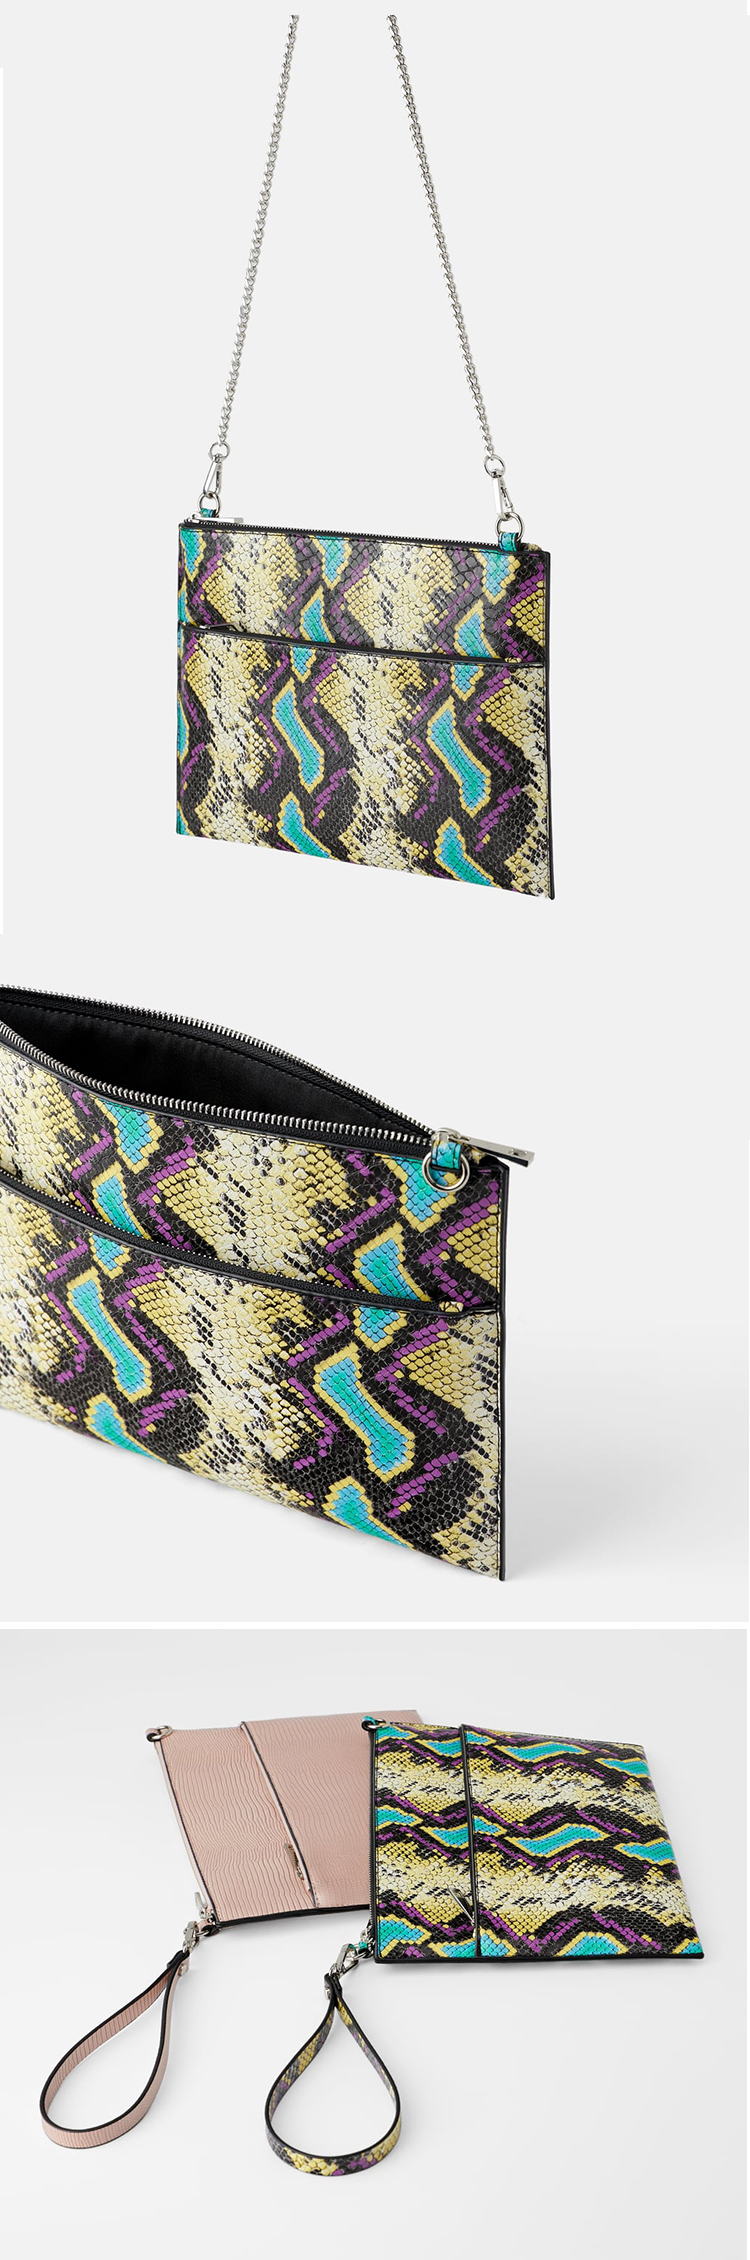 ladies-clutch-bag2_04